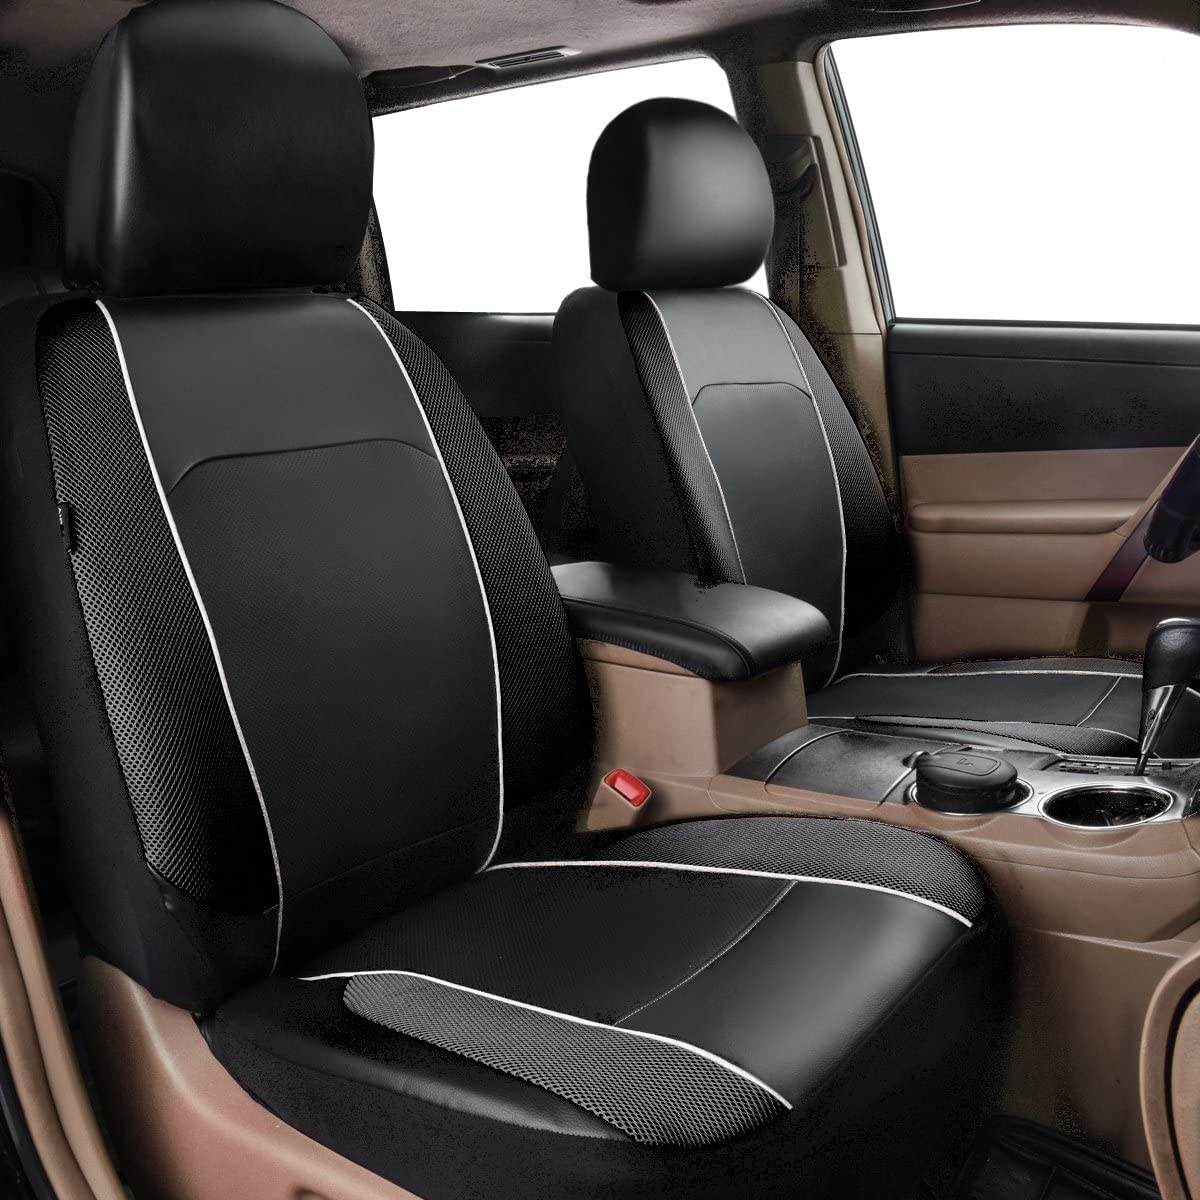 HORSE KINGDOM Universal Car Seat Covers Faux Leather With Air-mesh Orange For Women,Girls,Cars Trucks,Suvs,Sedans Breathable Airbag Compatible Black with Beige